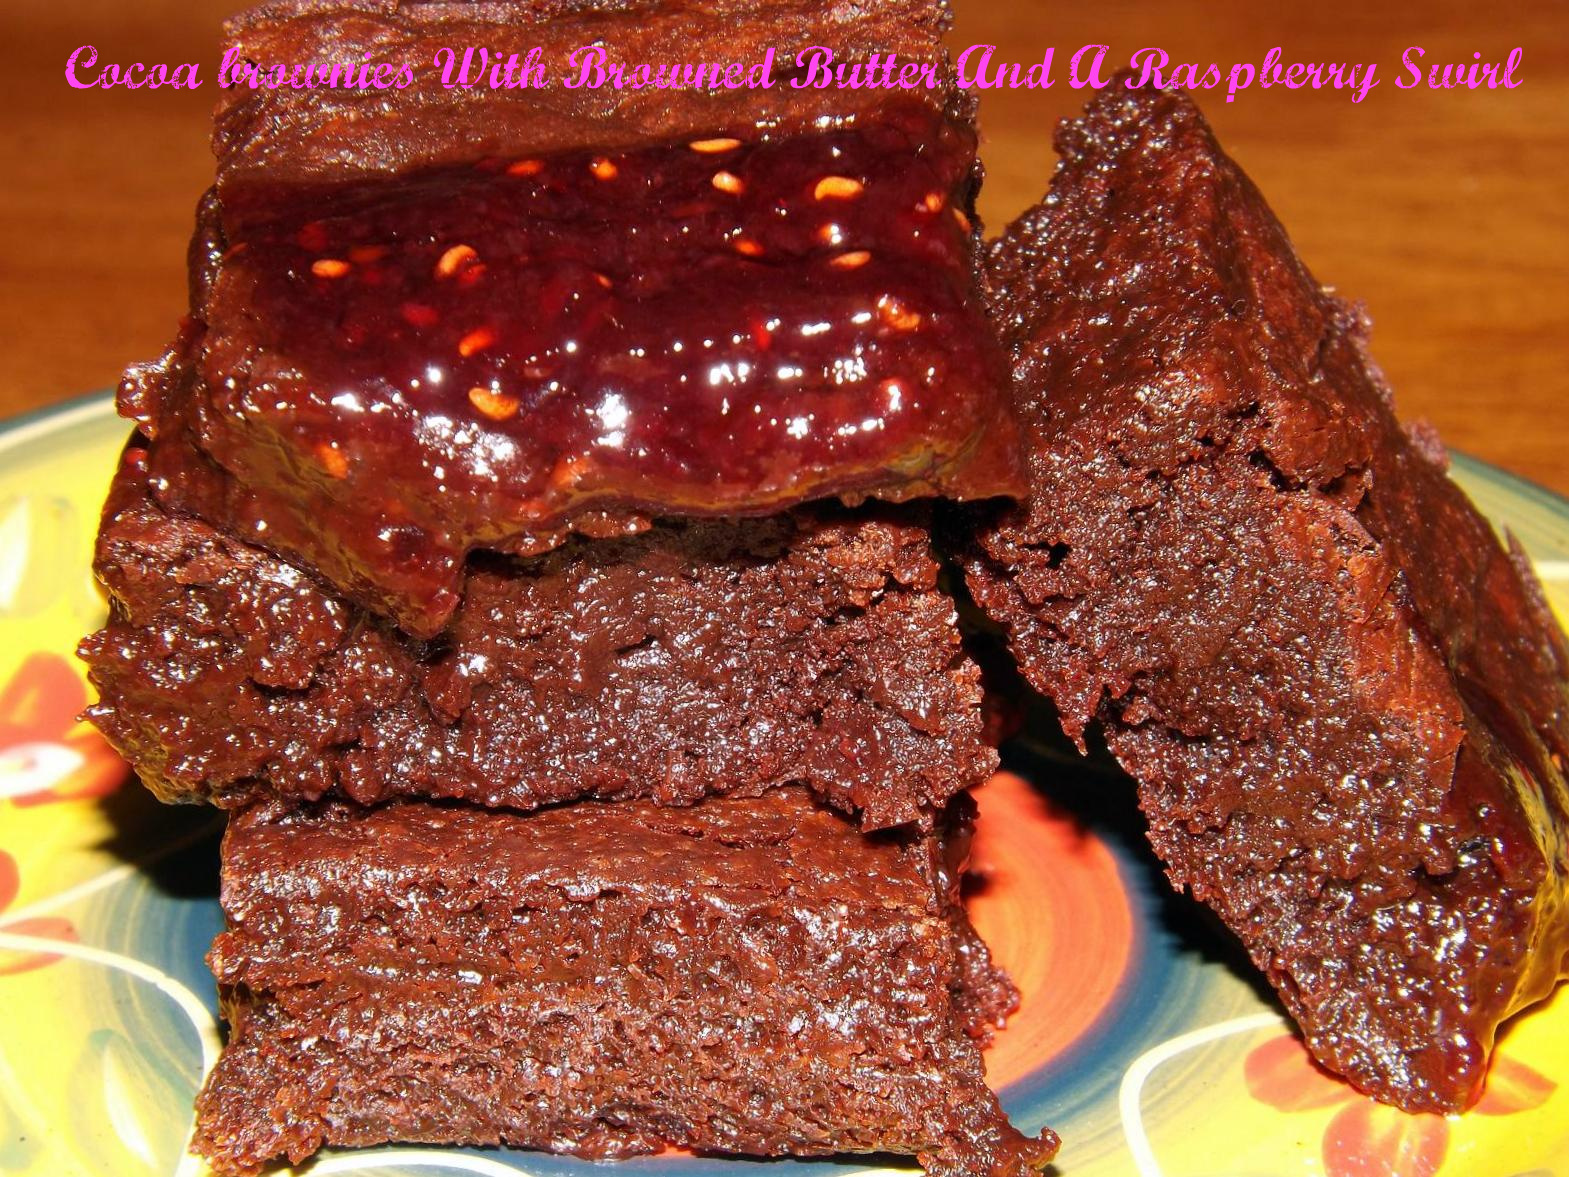 Cocoa Brownies With Browned Butter And A Raspberry Swirl